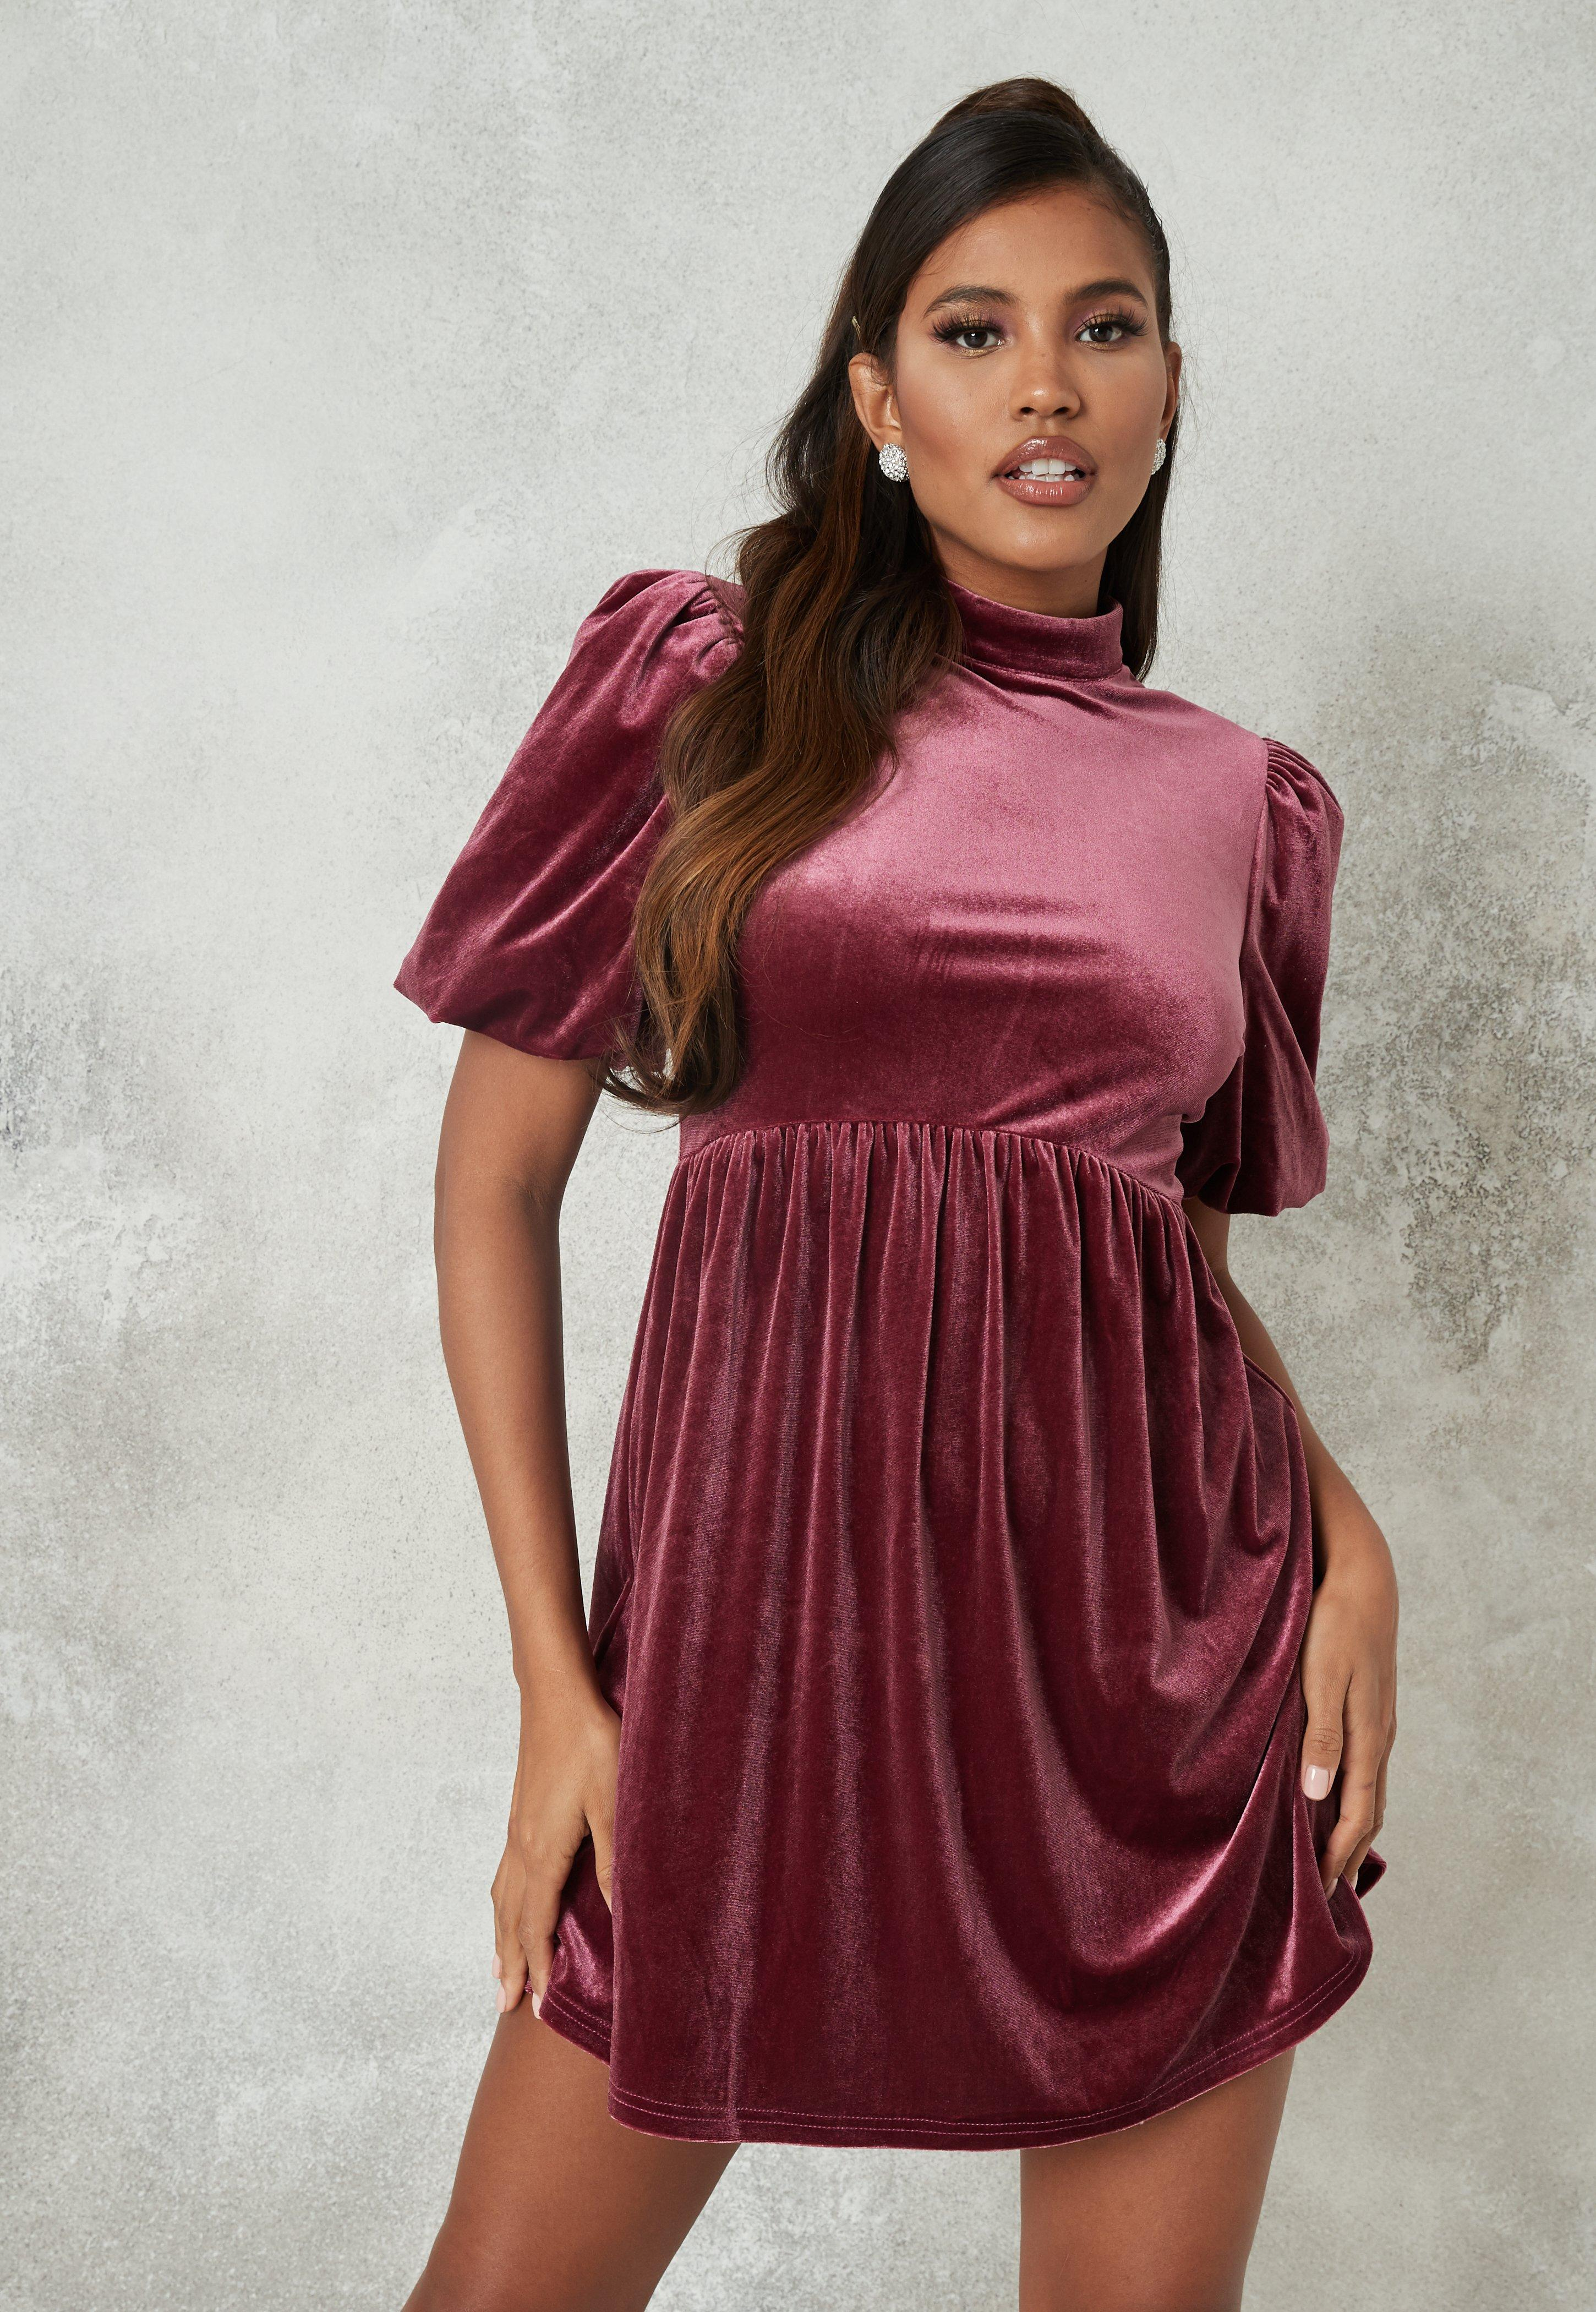 Robe Patineuse Achat Robe Patineuse Femme Missguided